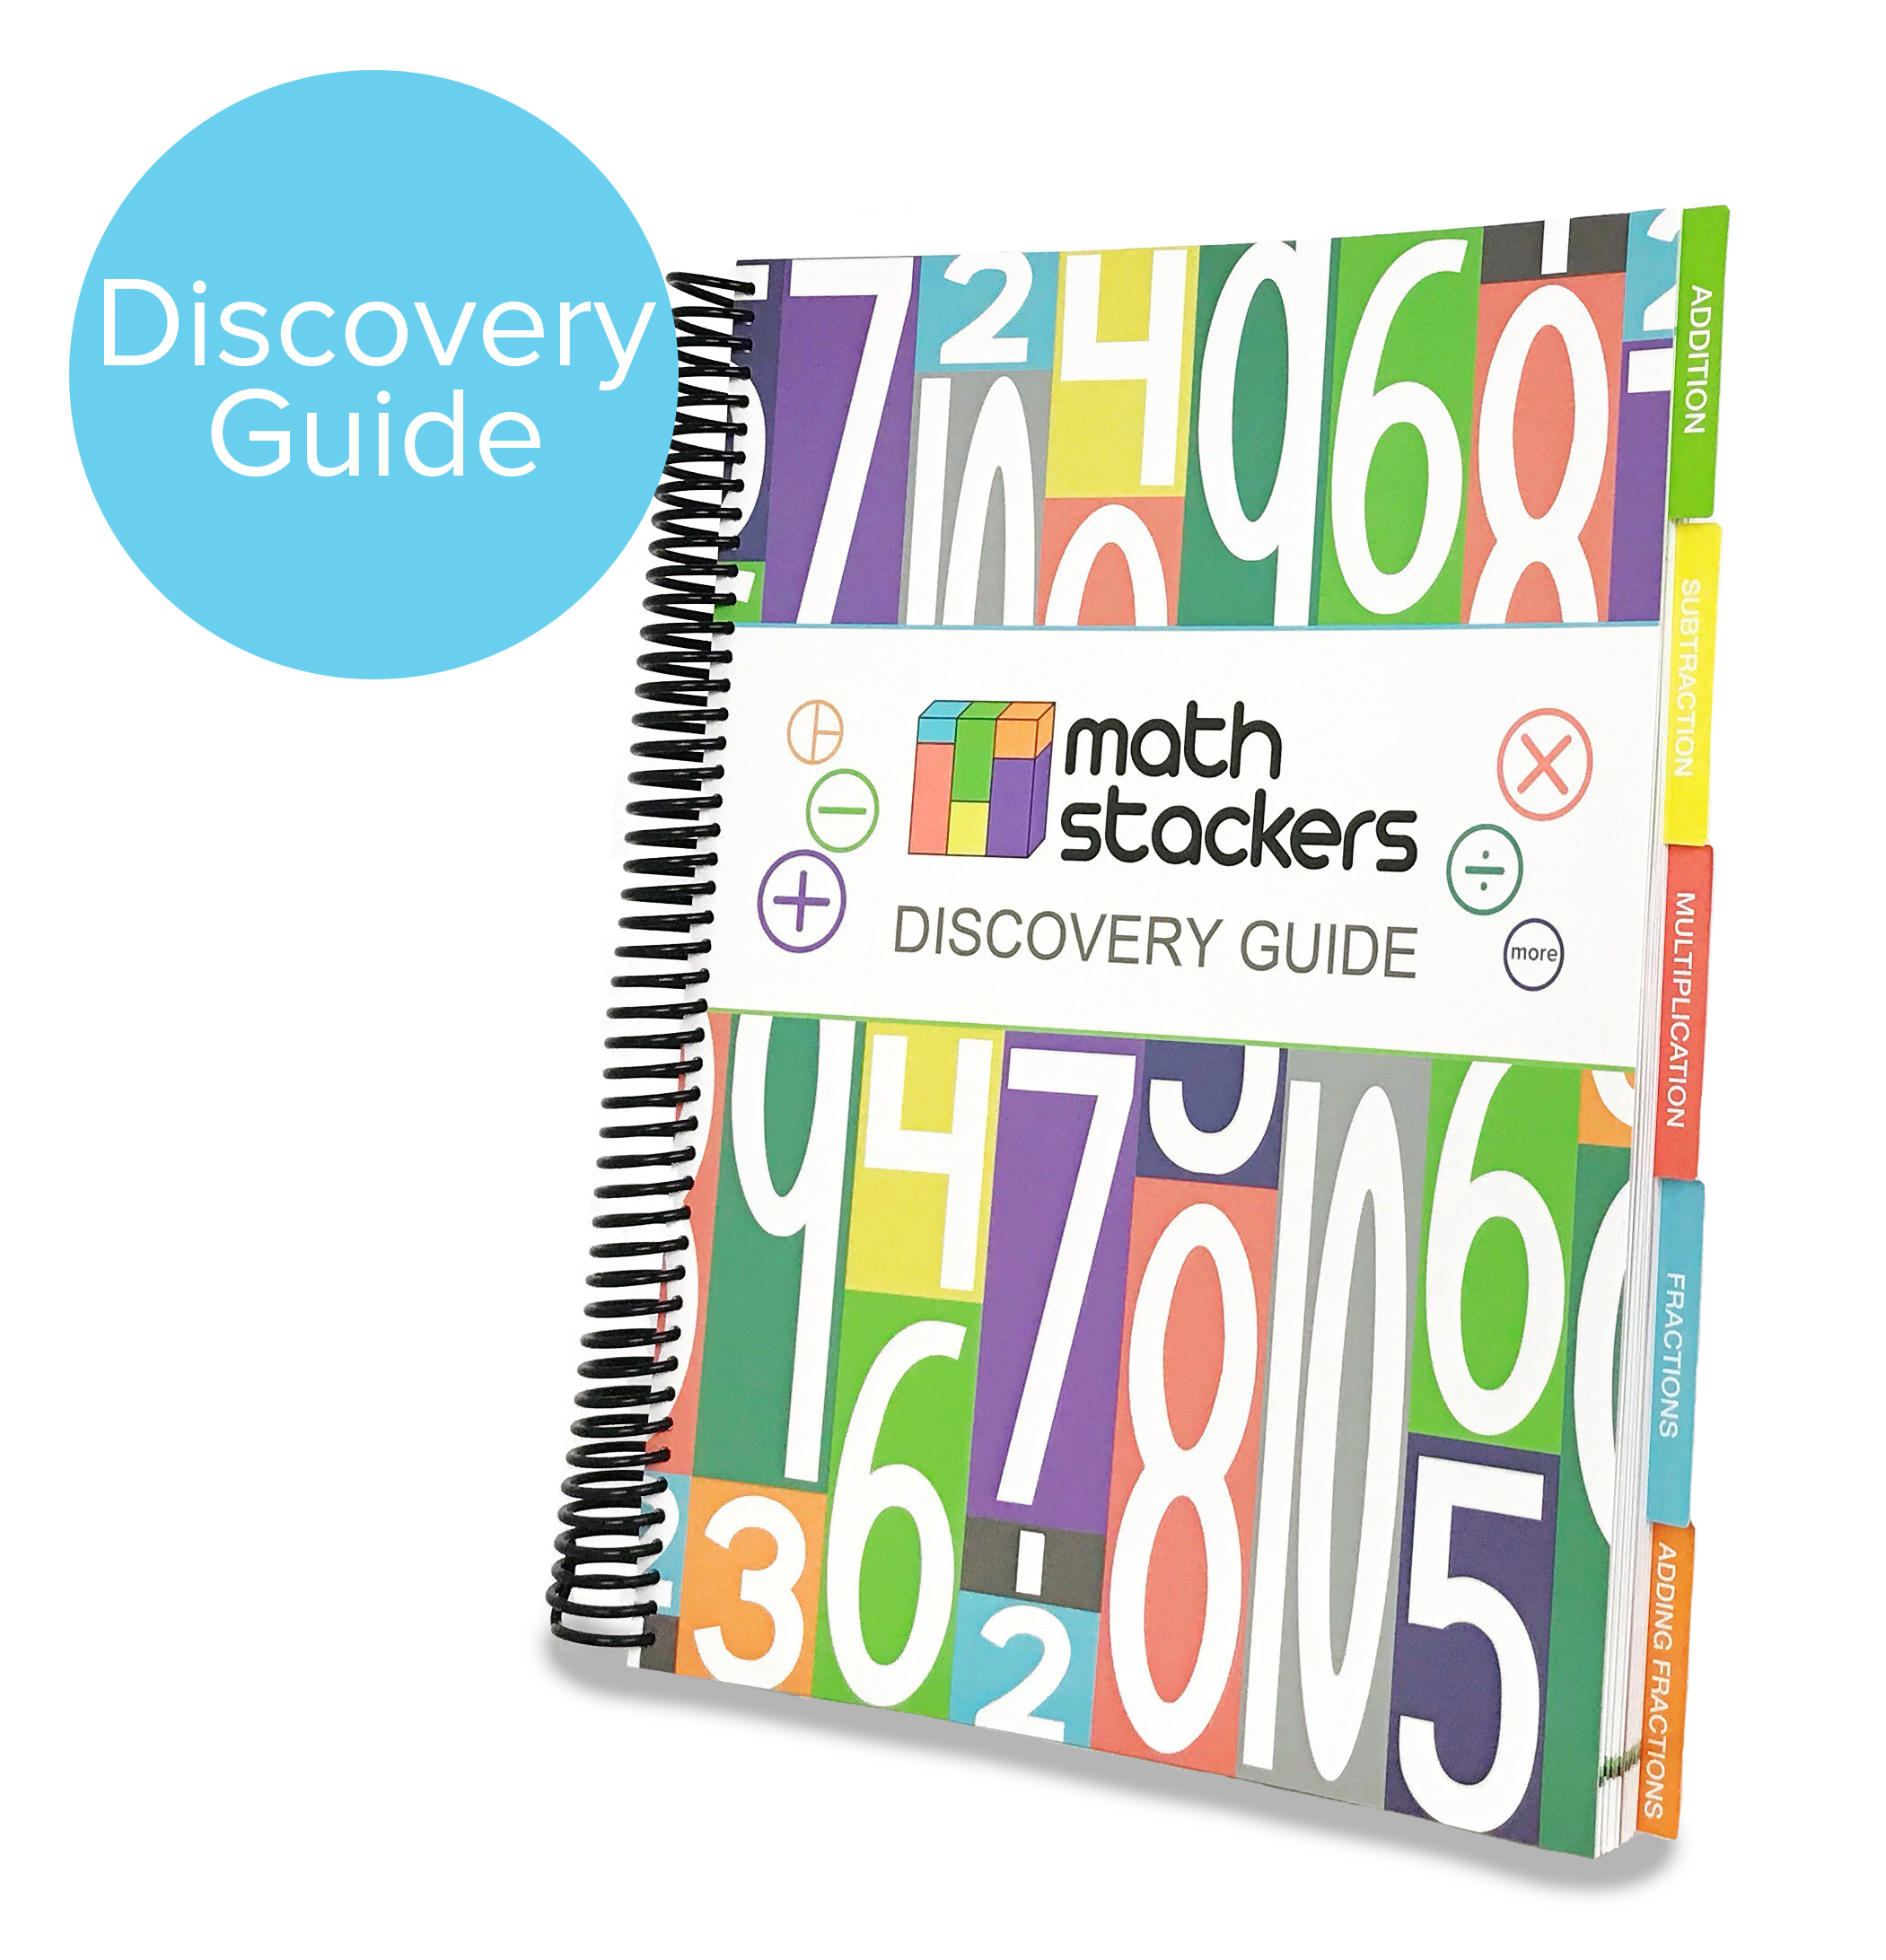 Discovery Guide for Website_v1circle.jpg